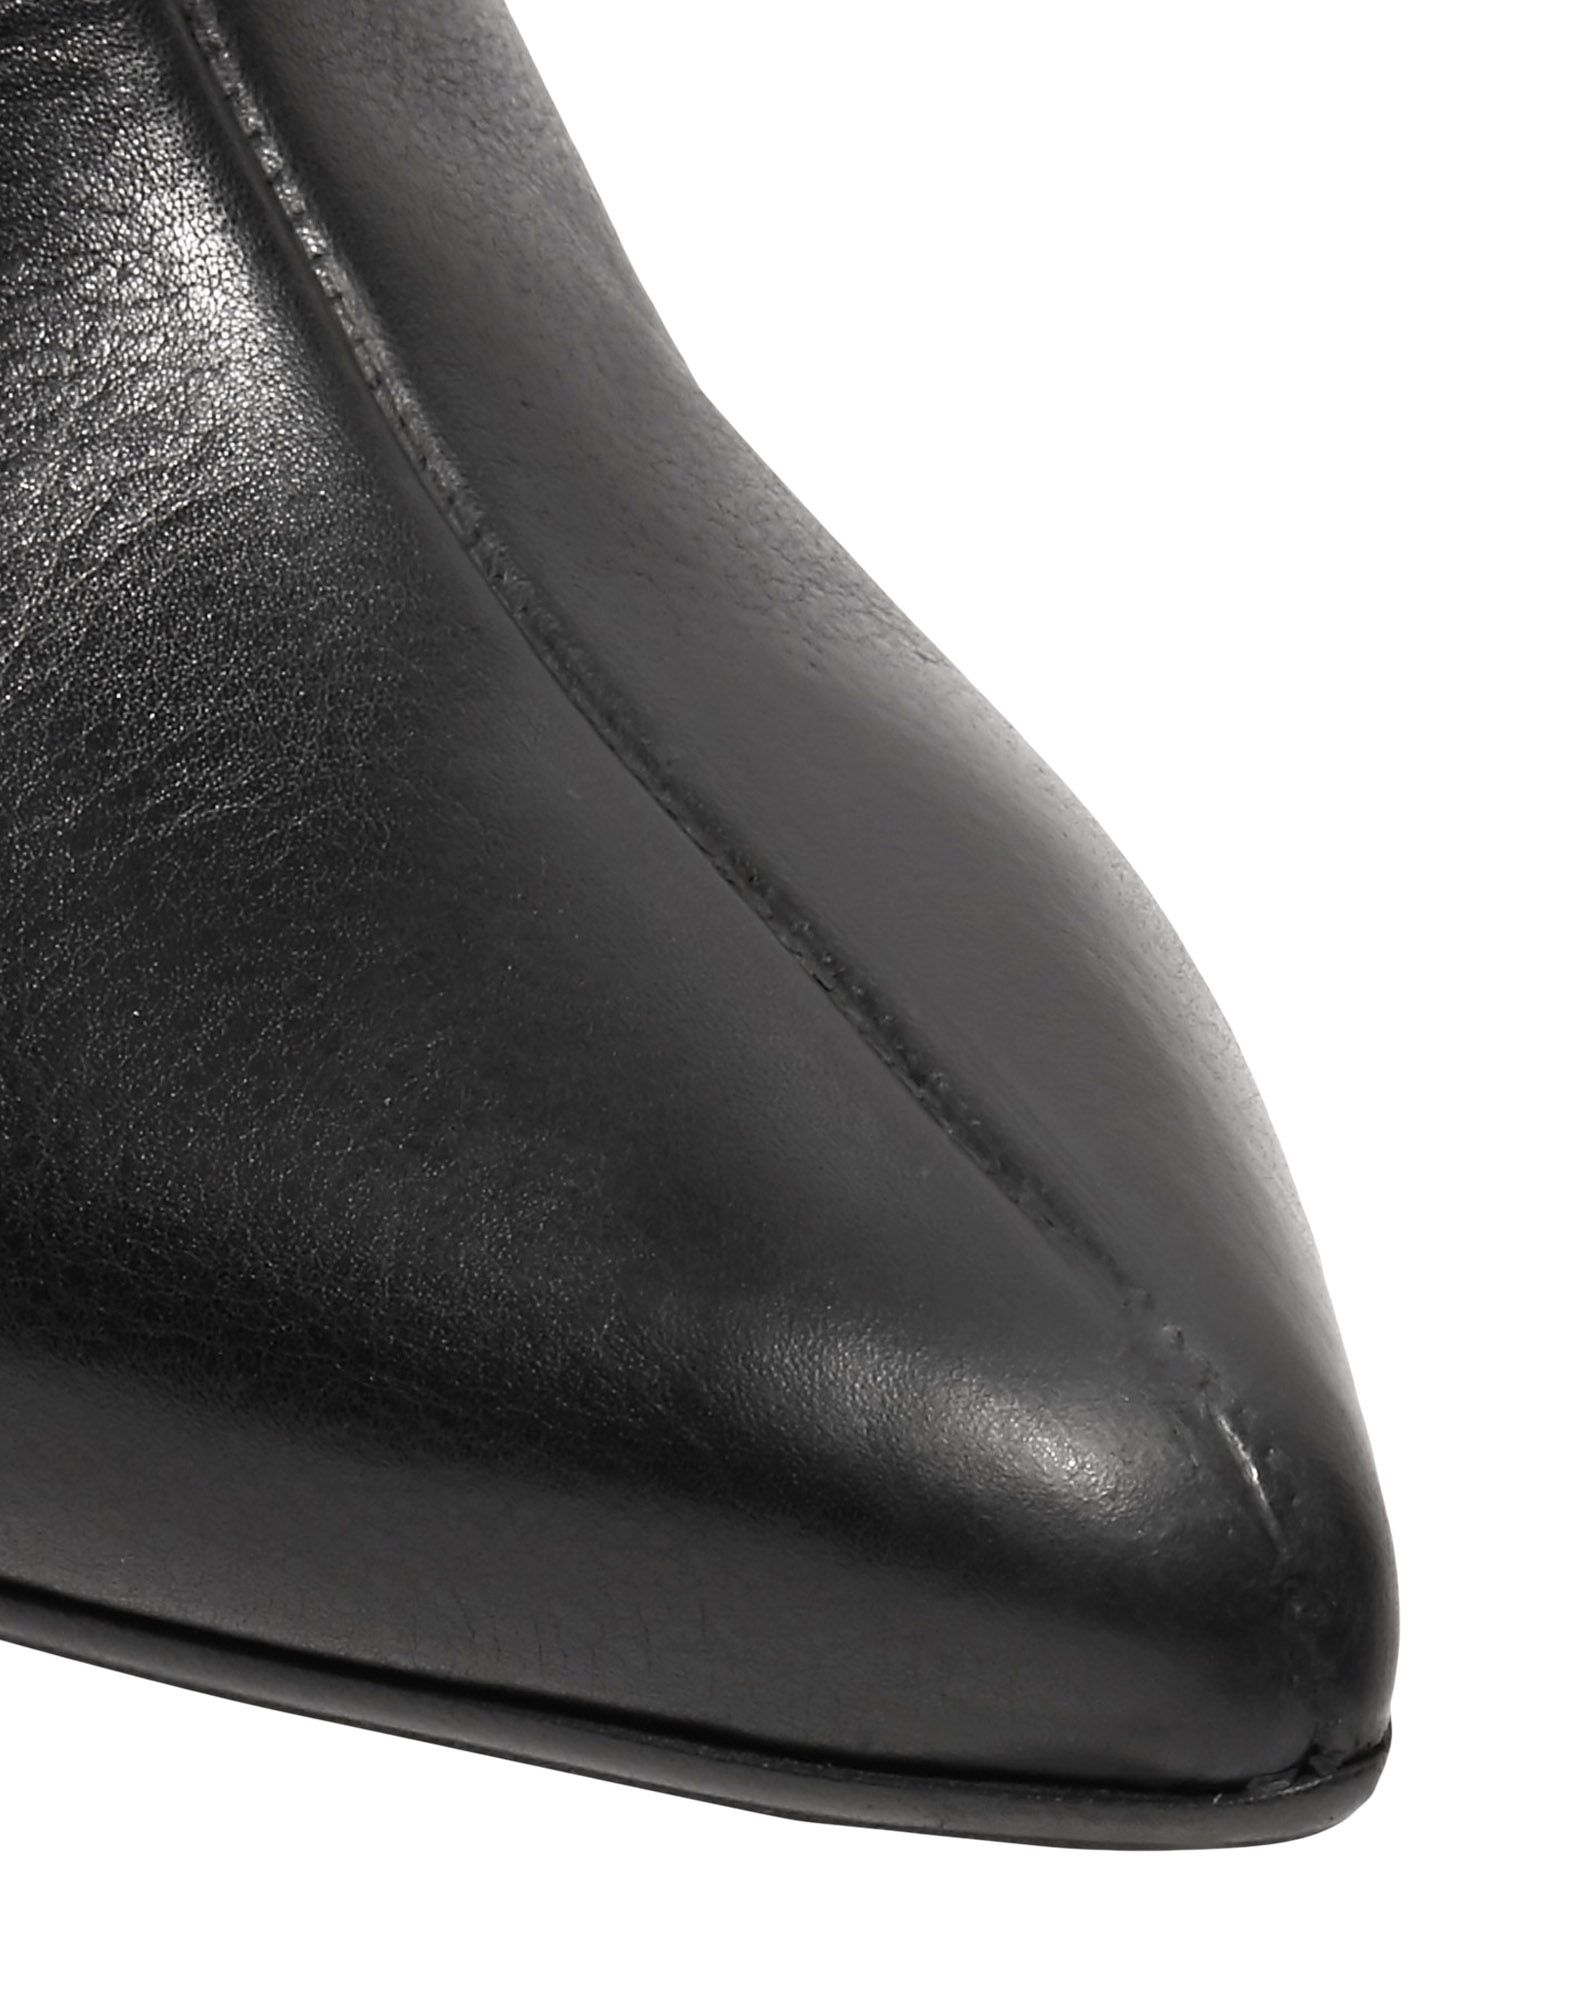 Atp Atelier Ankle Boot Boot Boot - Women Atp Atelier Ankle Boots online on  United Kingdom - 11531192DV 2e887d